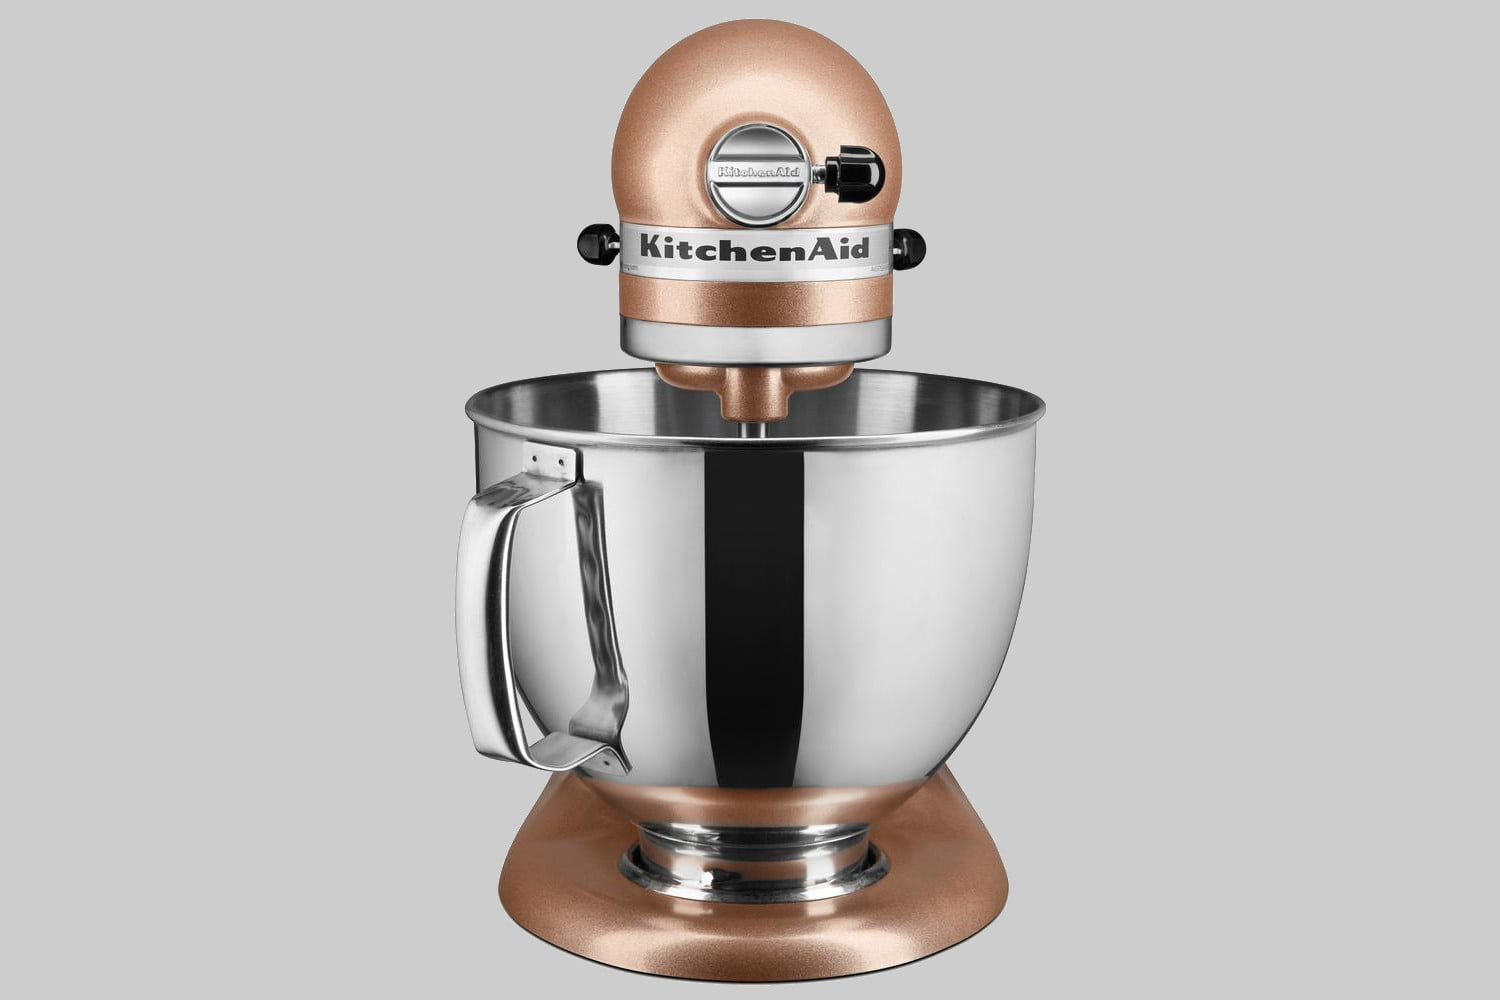 home depot drops prices on kitchenaid mixers espresso maker and food processor artisan 5 qt  10 speed toffee delight stand mi